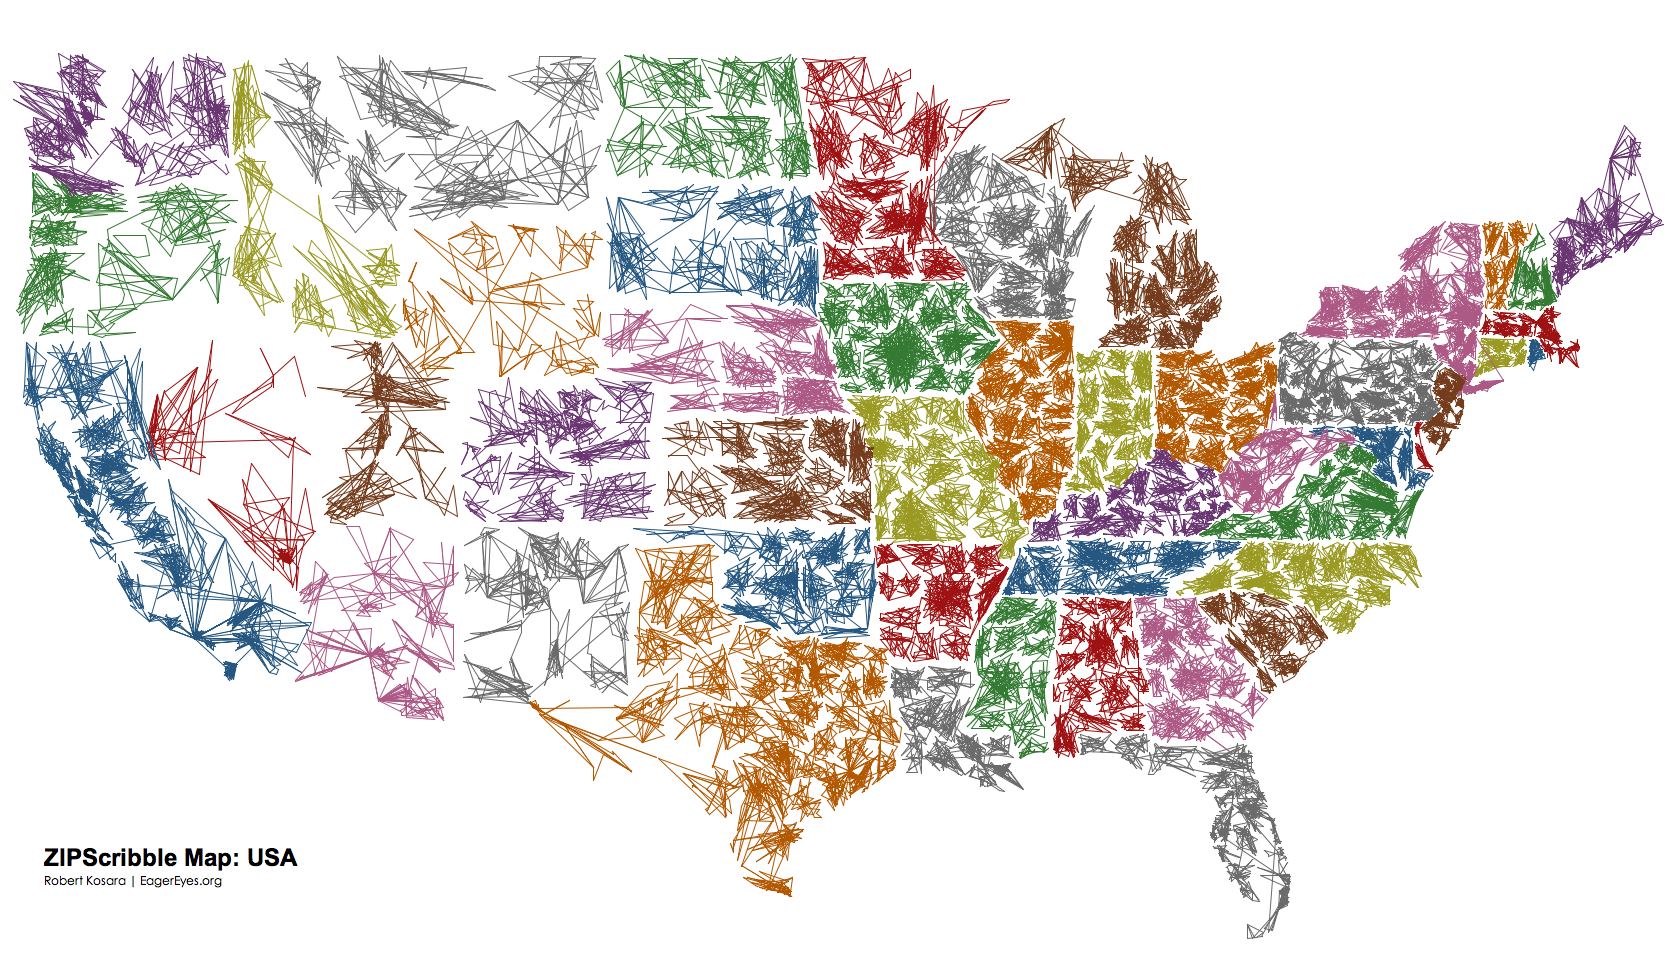 Us Map Color Code The US ZIPScribble Map